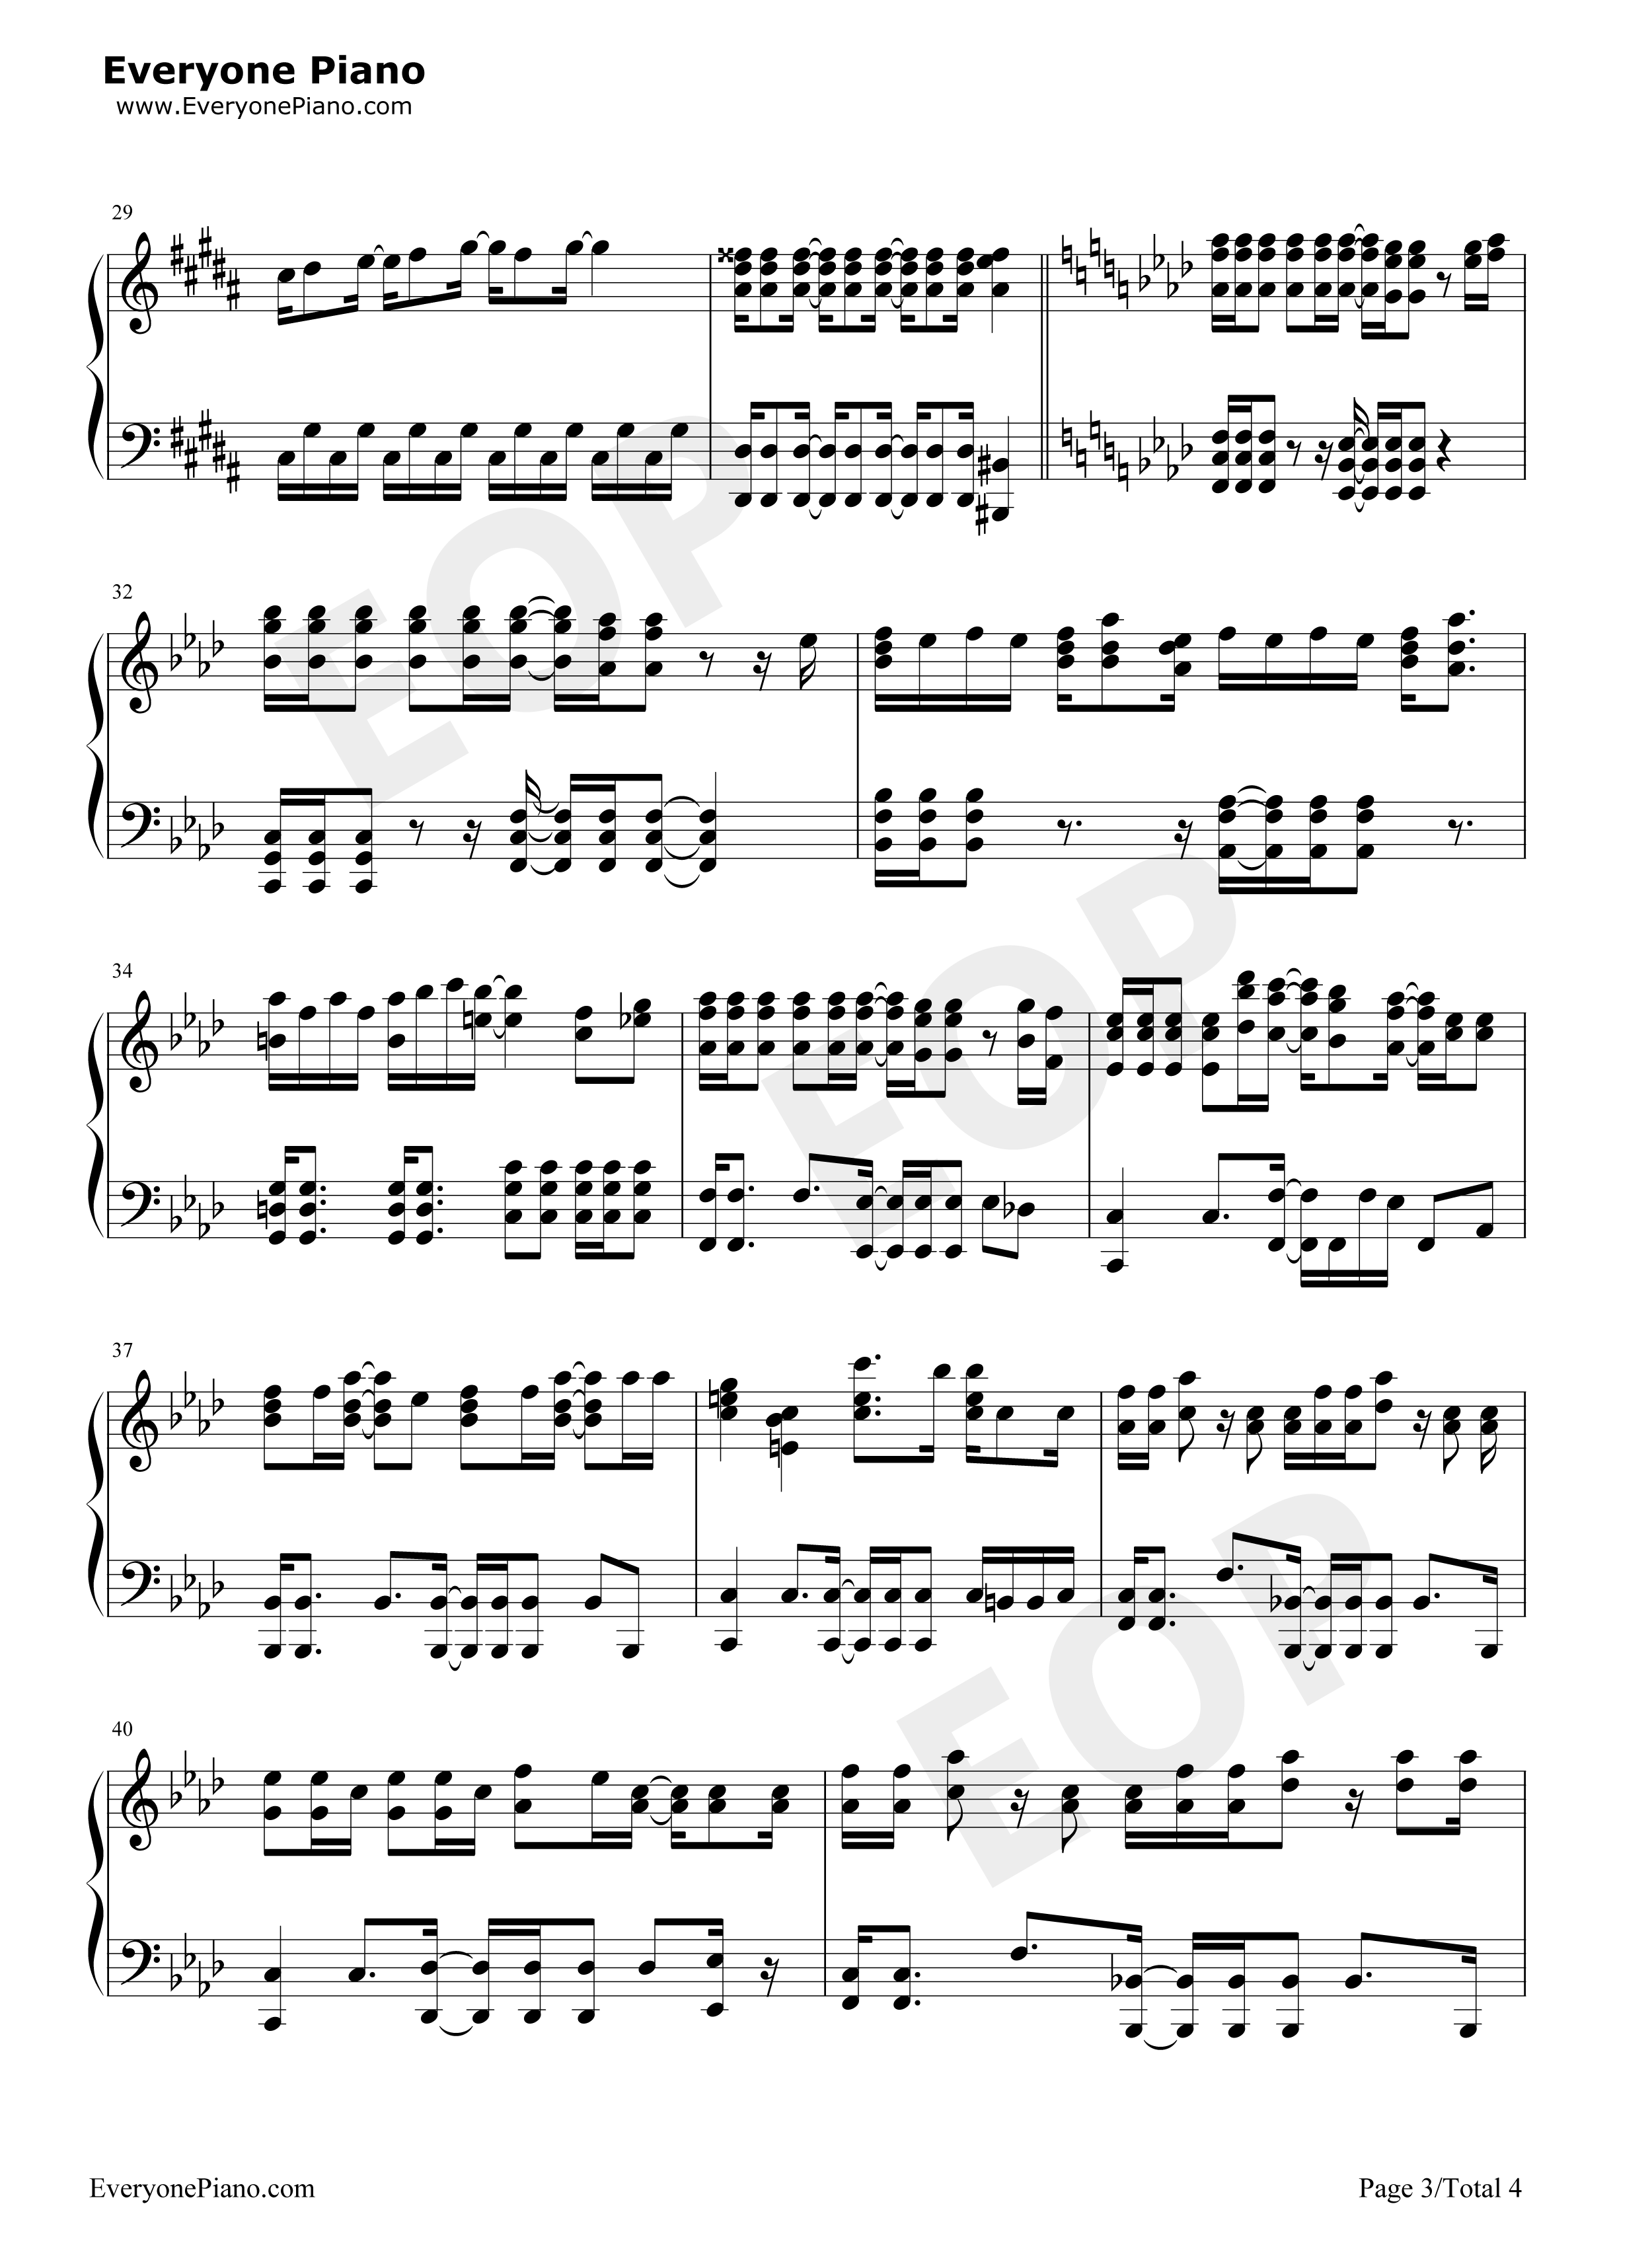 2017 may archives music sheets chords tablature and song piano sheet music chords beginners photograph sheet music by ed sheeran beginner piano 119250 hexwebz Gallery